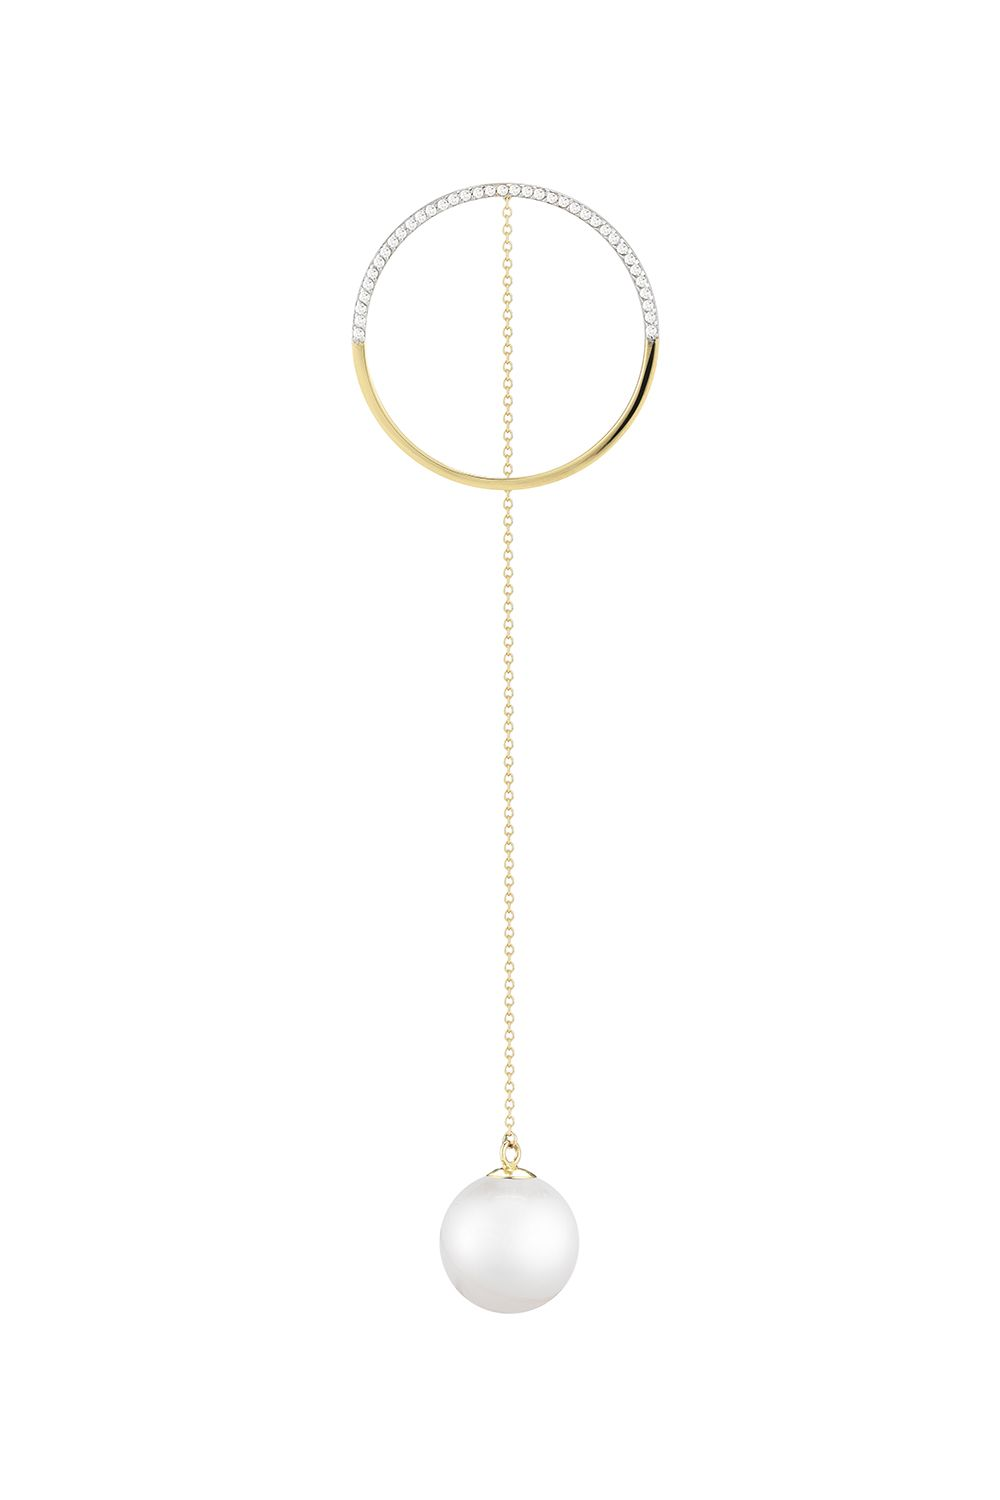 """<p><strong data-redactor-tag=""""strong""""></strong>A pendulum pearl addsjust the right amount of feminine edge to this sculptural dangler.<span data-redactor-class=""""sqs-money-native"""" data-redactor-tag=""""span"""" class=""""sqs-money-native"""" data-verified=""""redactor""""></span></p><p><span data-redactor-class=""""sqs-money-native"""" data-redactor-tag=""""span"""" class=""""sqs-money-native"""" data-verified=""""redactor"""">$560,</span><a href=""""http://efcollection.com"""" target=""""_blank"""" data-saferedirecturl=""""https://www.google.com/url?hl=en&q=http://efcollection.com&source=gmail&ust=1484077955590000&usg=AFQjCNFvgUEzlCIPmXyWU37hkCWjX0i_Mg"""">mateonewyork.com<span data-redactor-class=""""redactor-invisible-space"""" data-redactor-tag=""""span"""" class=""""redactor-invisible-space"""" data-verified=""""redactor""""></span></a>.</p>"""